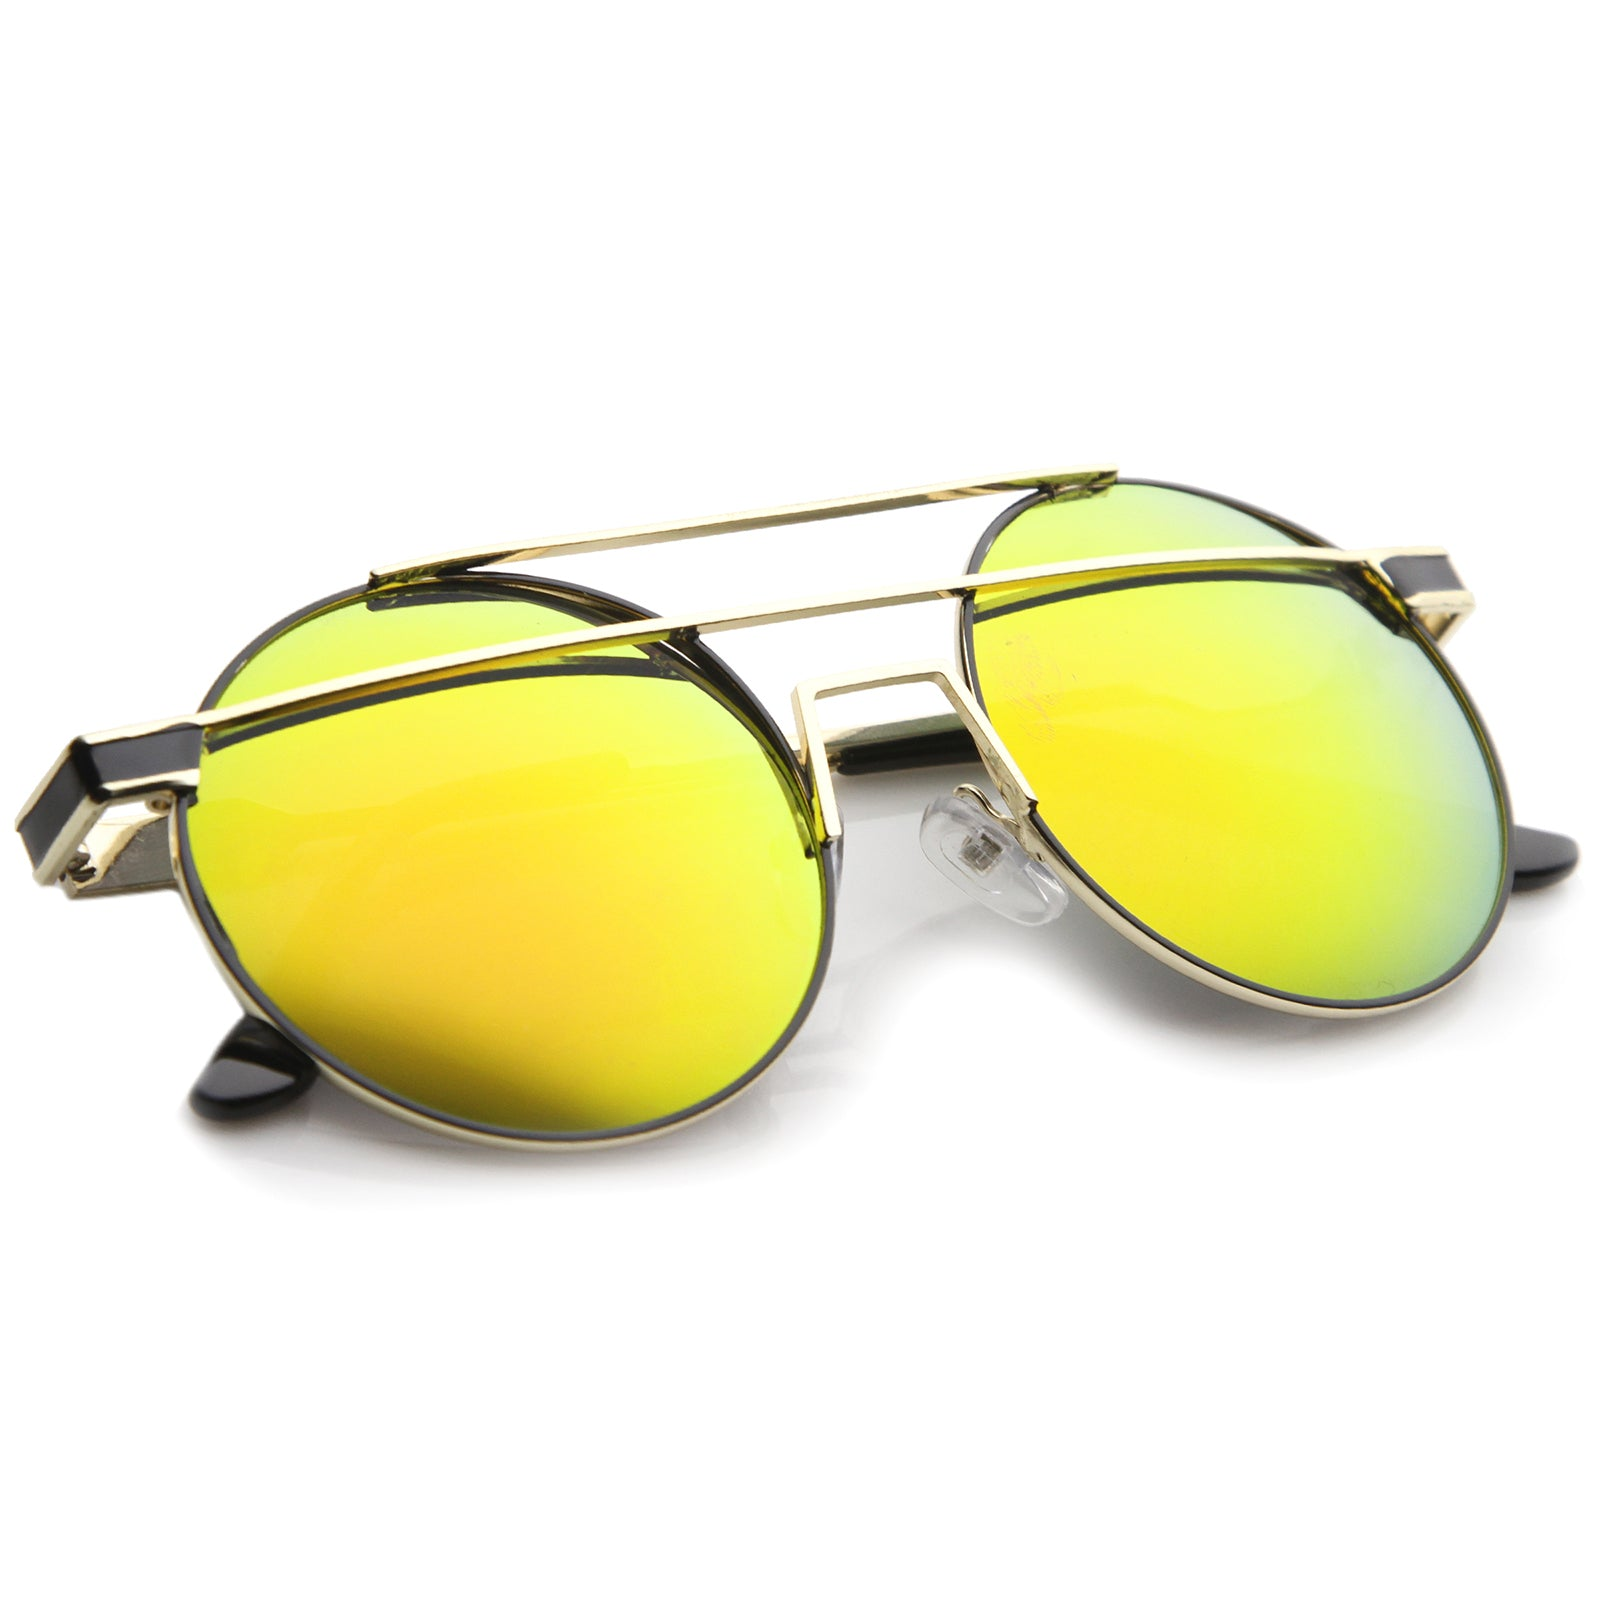 Modern Metal Frame Double Bridge Colored Mirror Lens Round Sunglasses 59mm - sunglass.la - 12